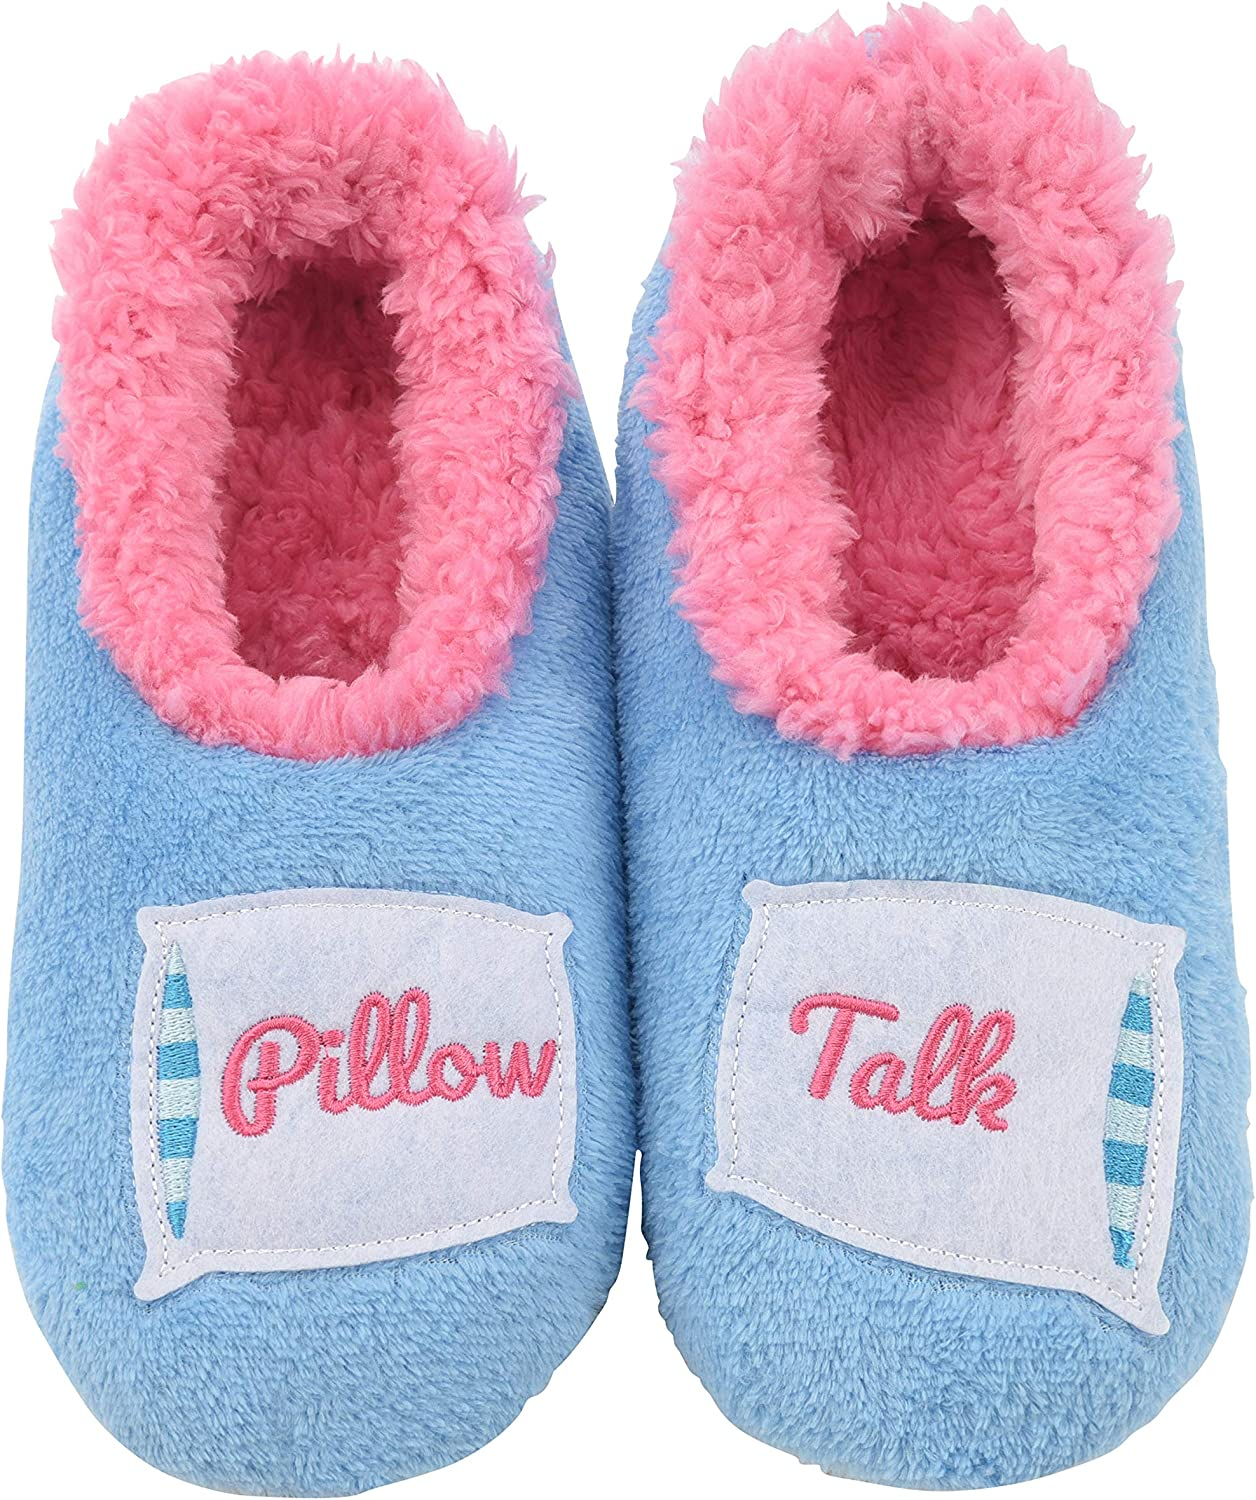 Snoozies Pairables Womens Slippers - House Slippers - Pillow Talk